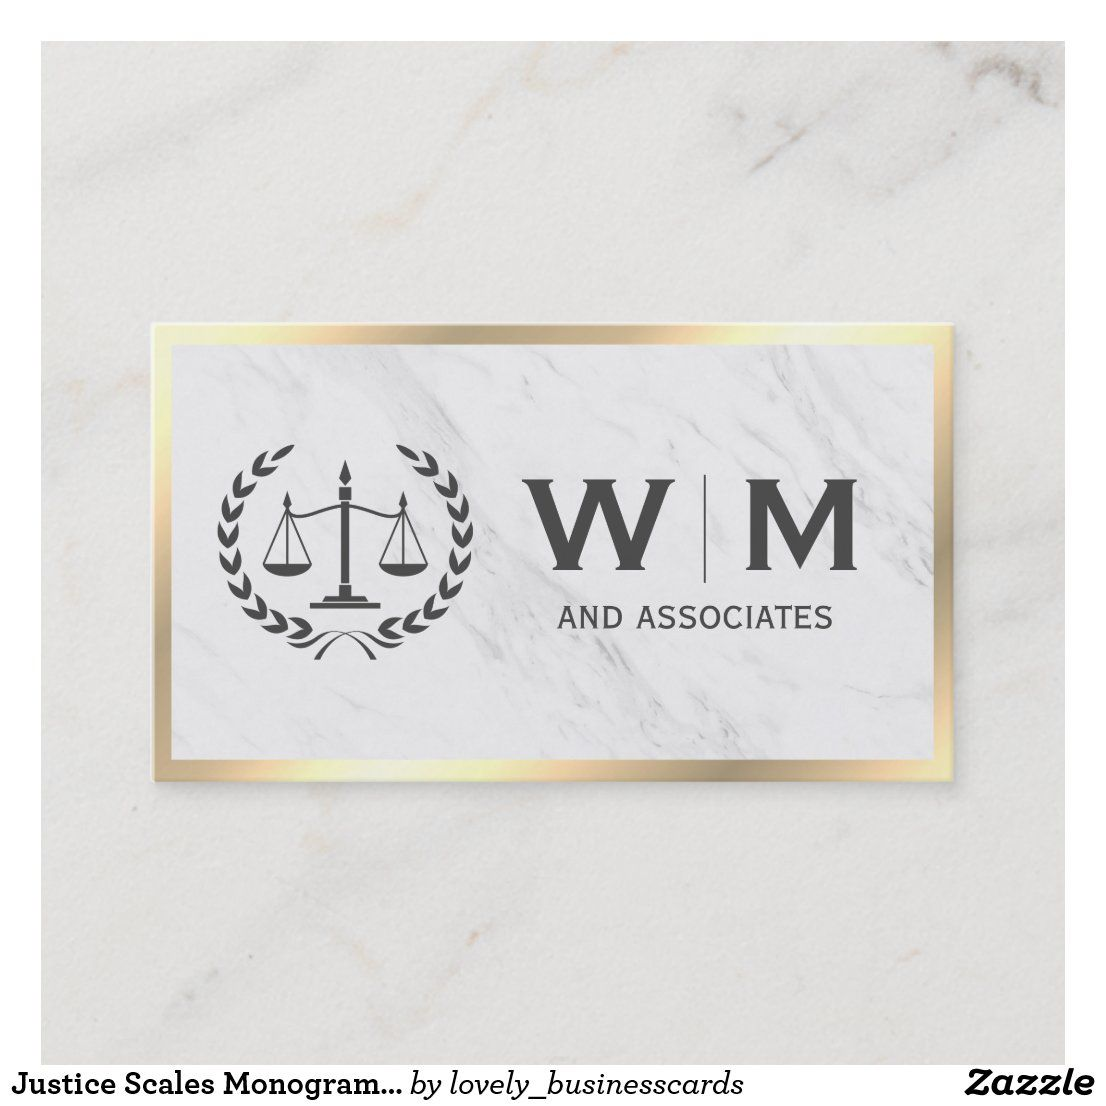 Justice scales monogram marble gold border business card